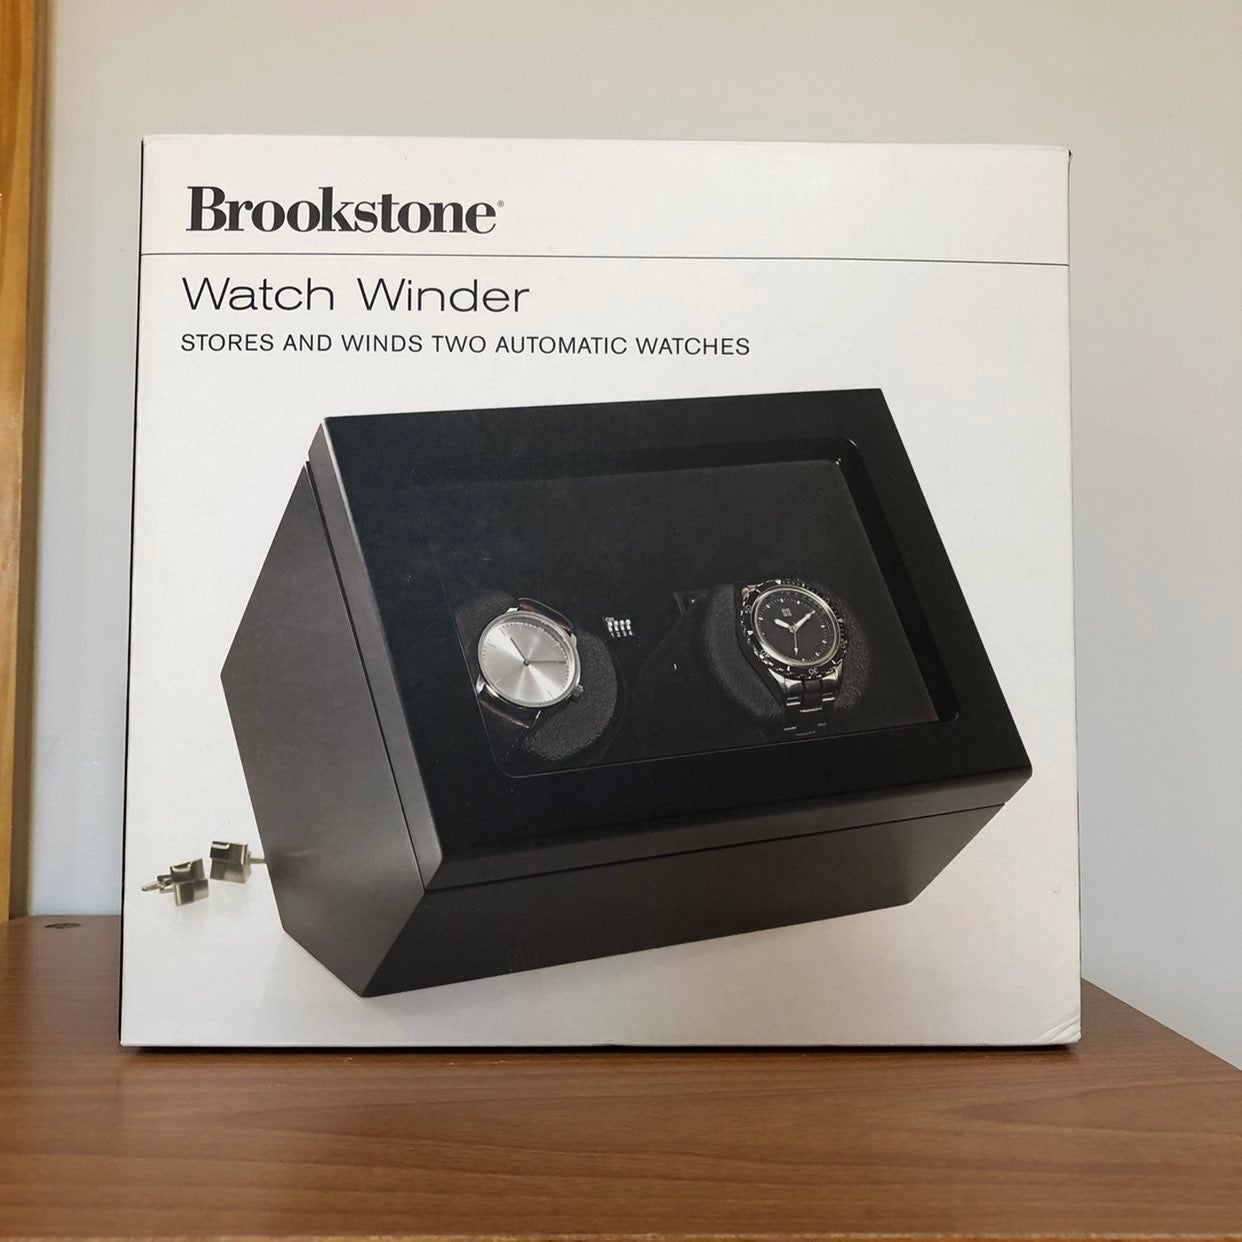 Brookstone Automatic Watch Winder for 2